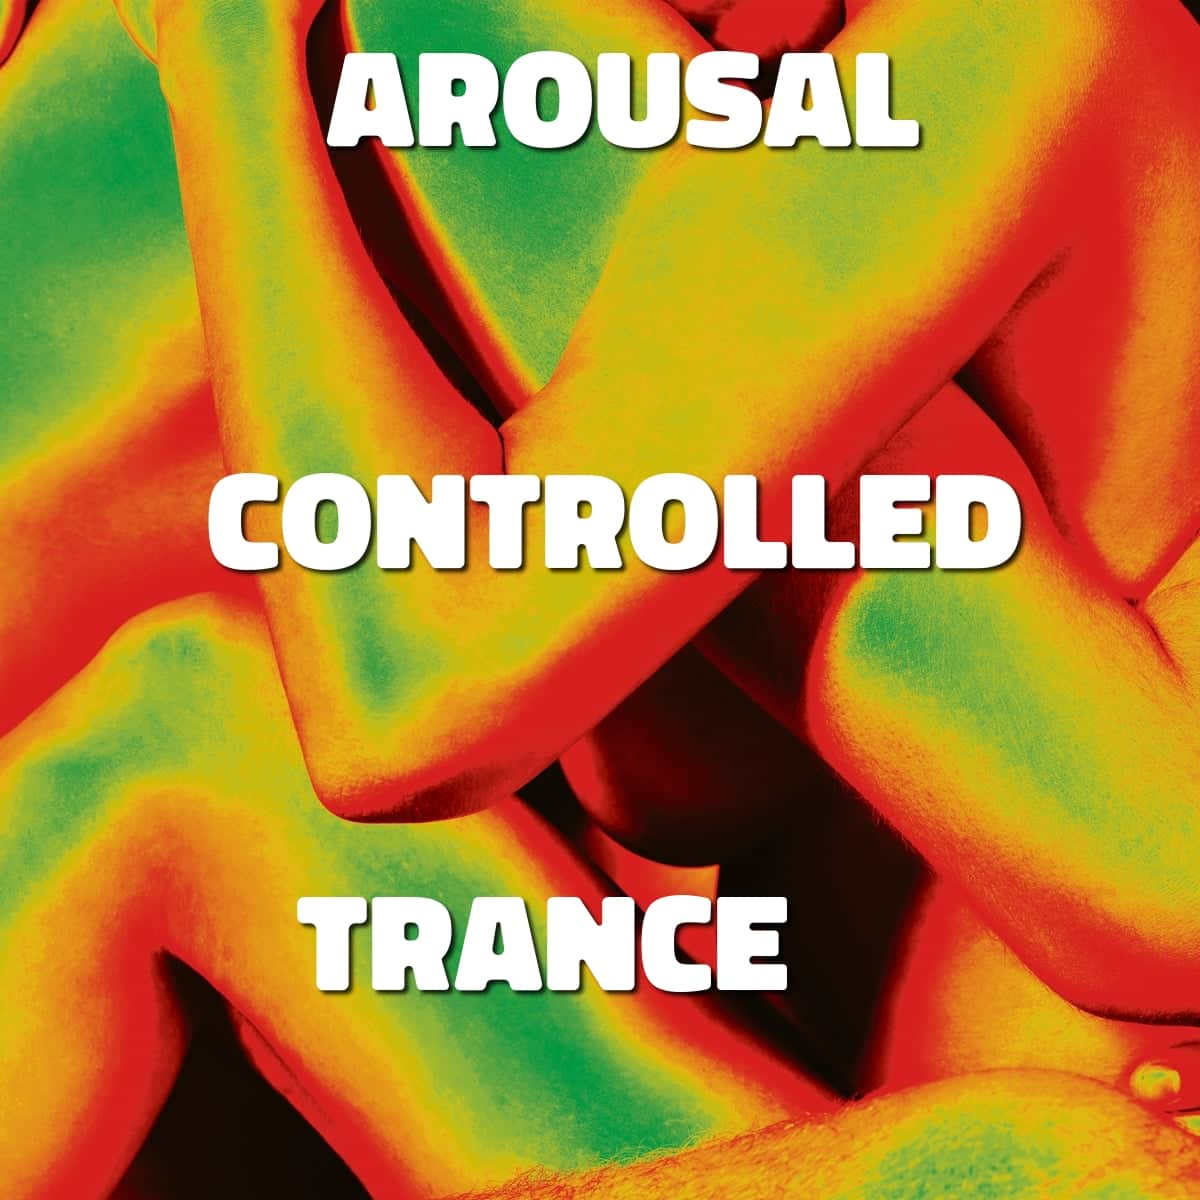 Arousal Controlled Trance